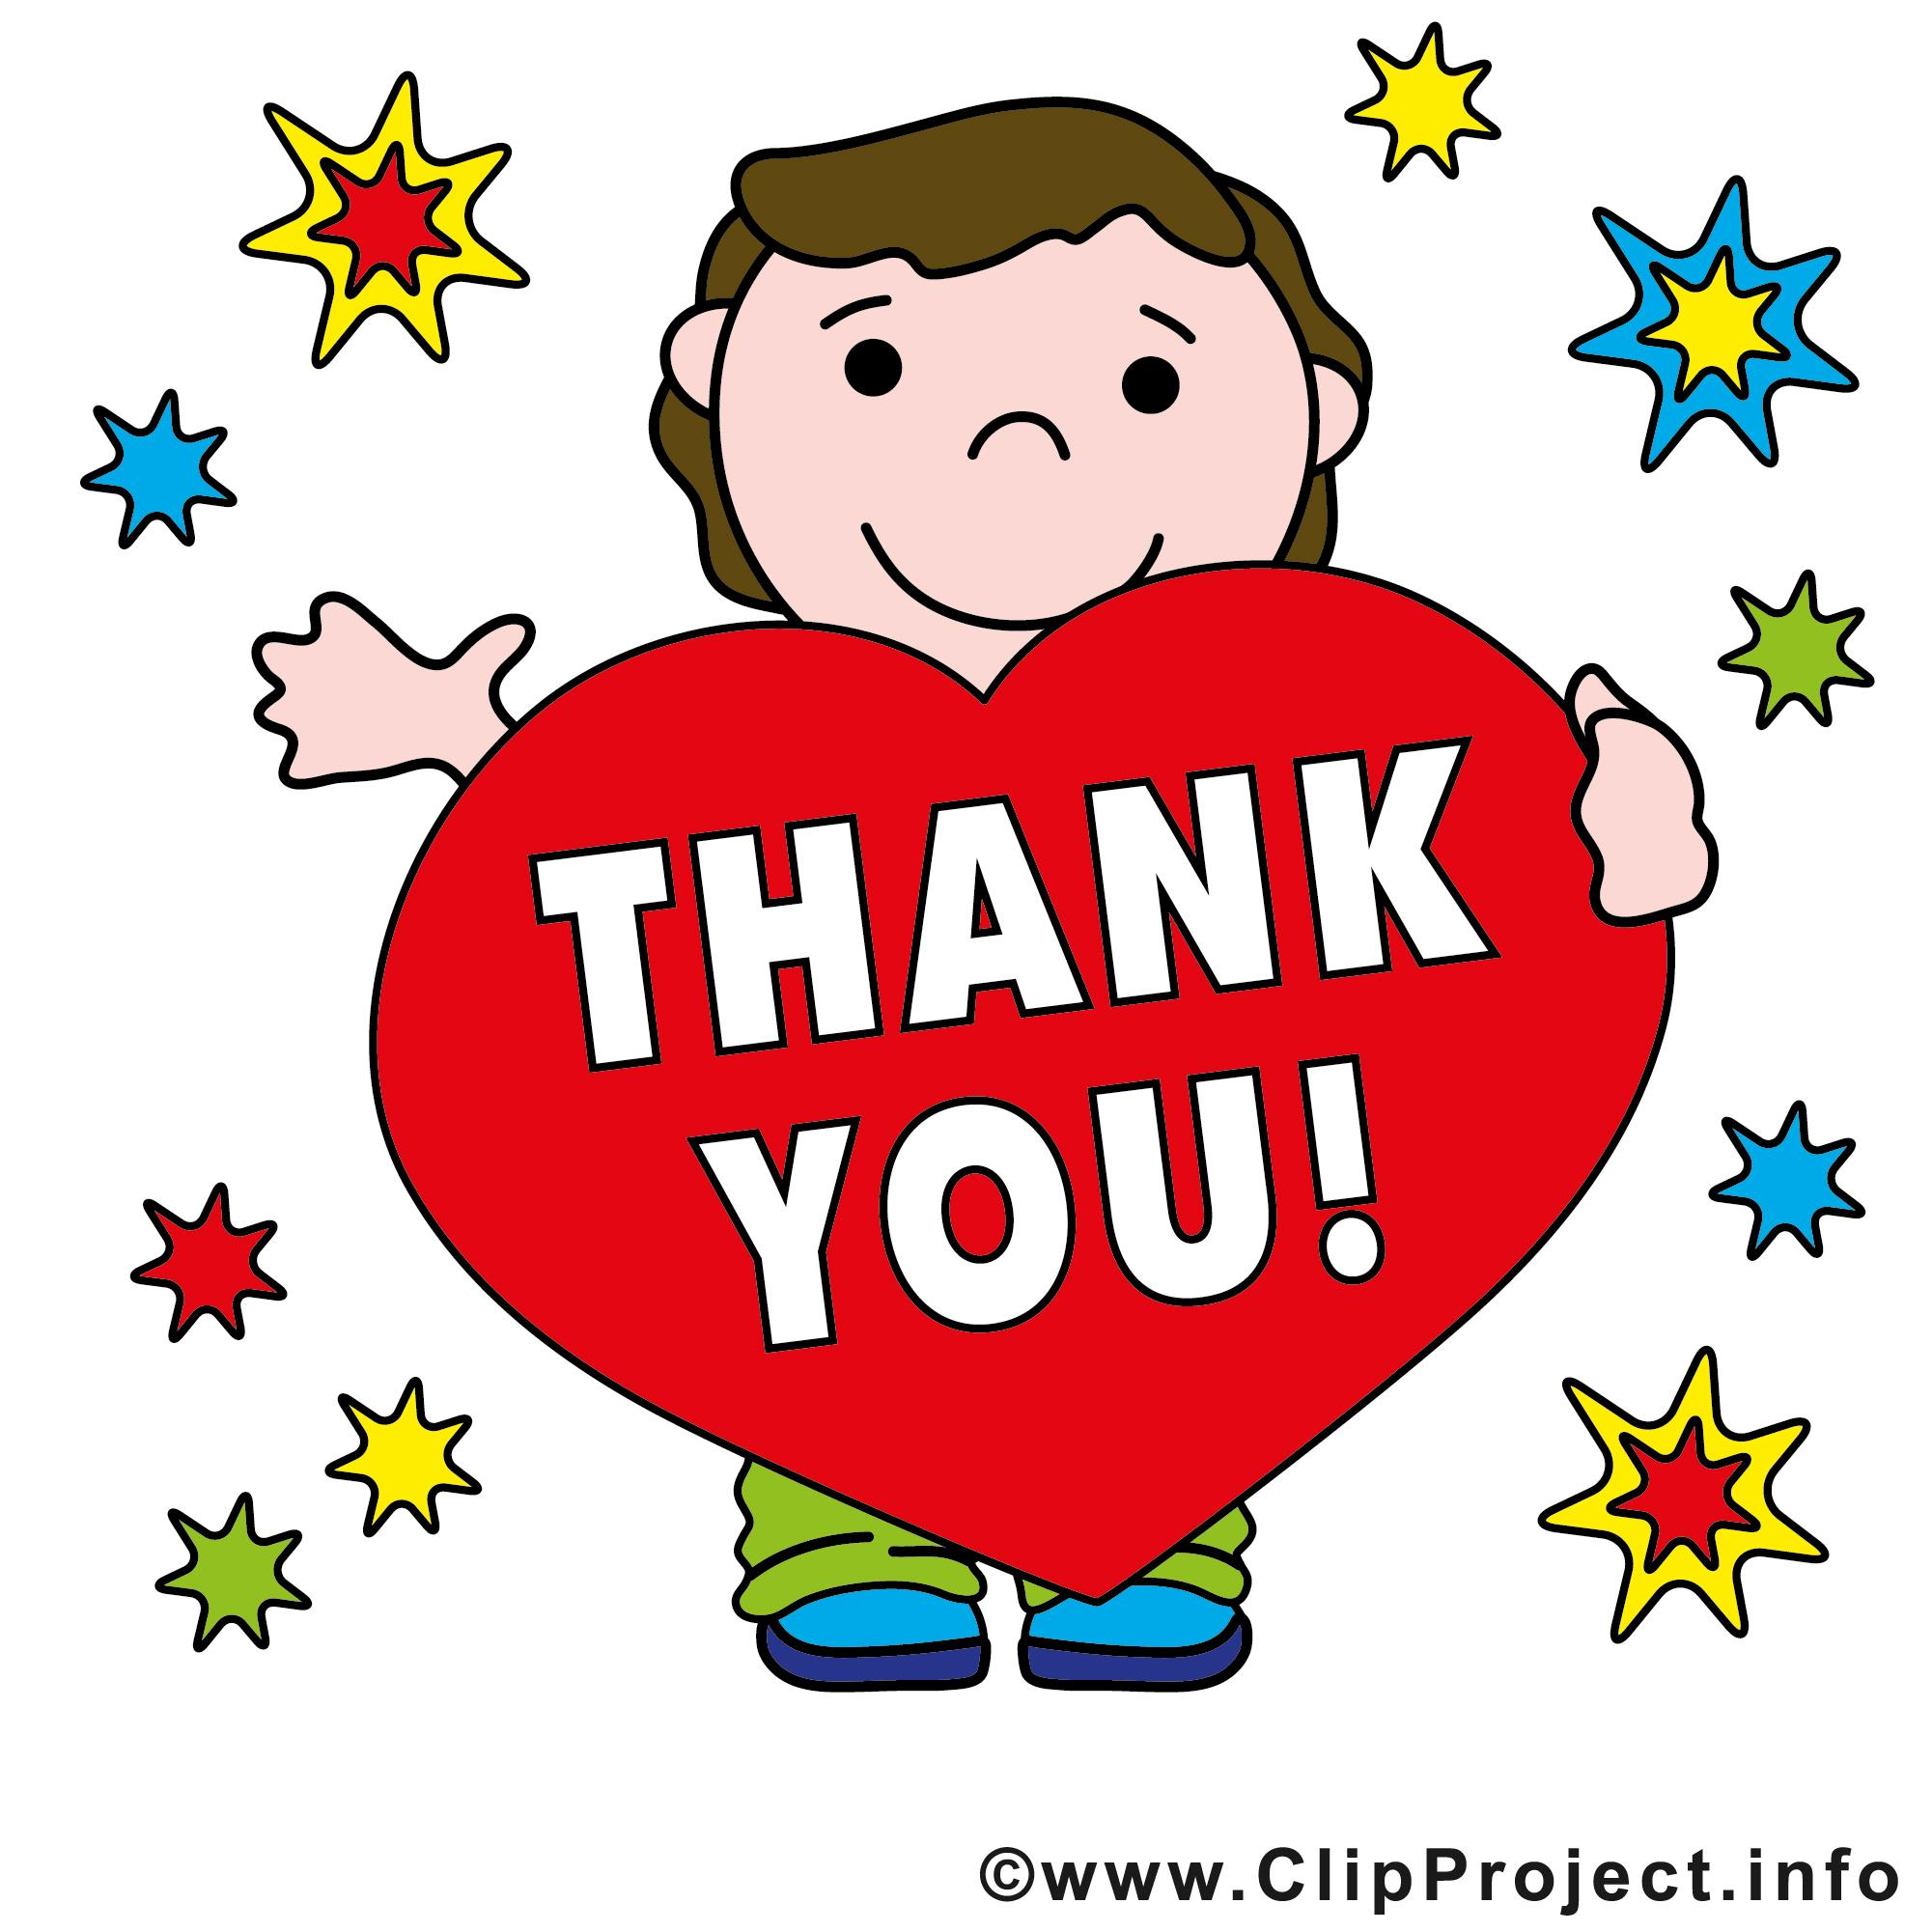 Thank You Clipart Free Clipart Panda Free Clipart Images.